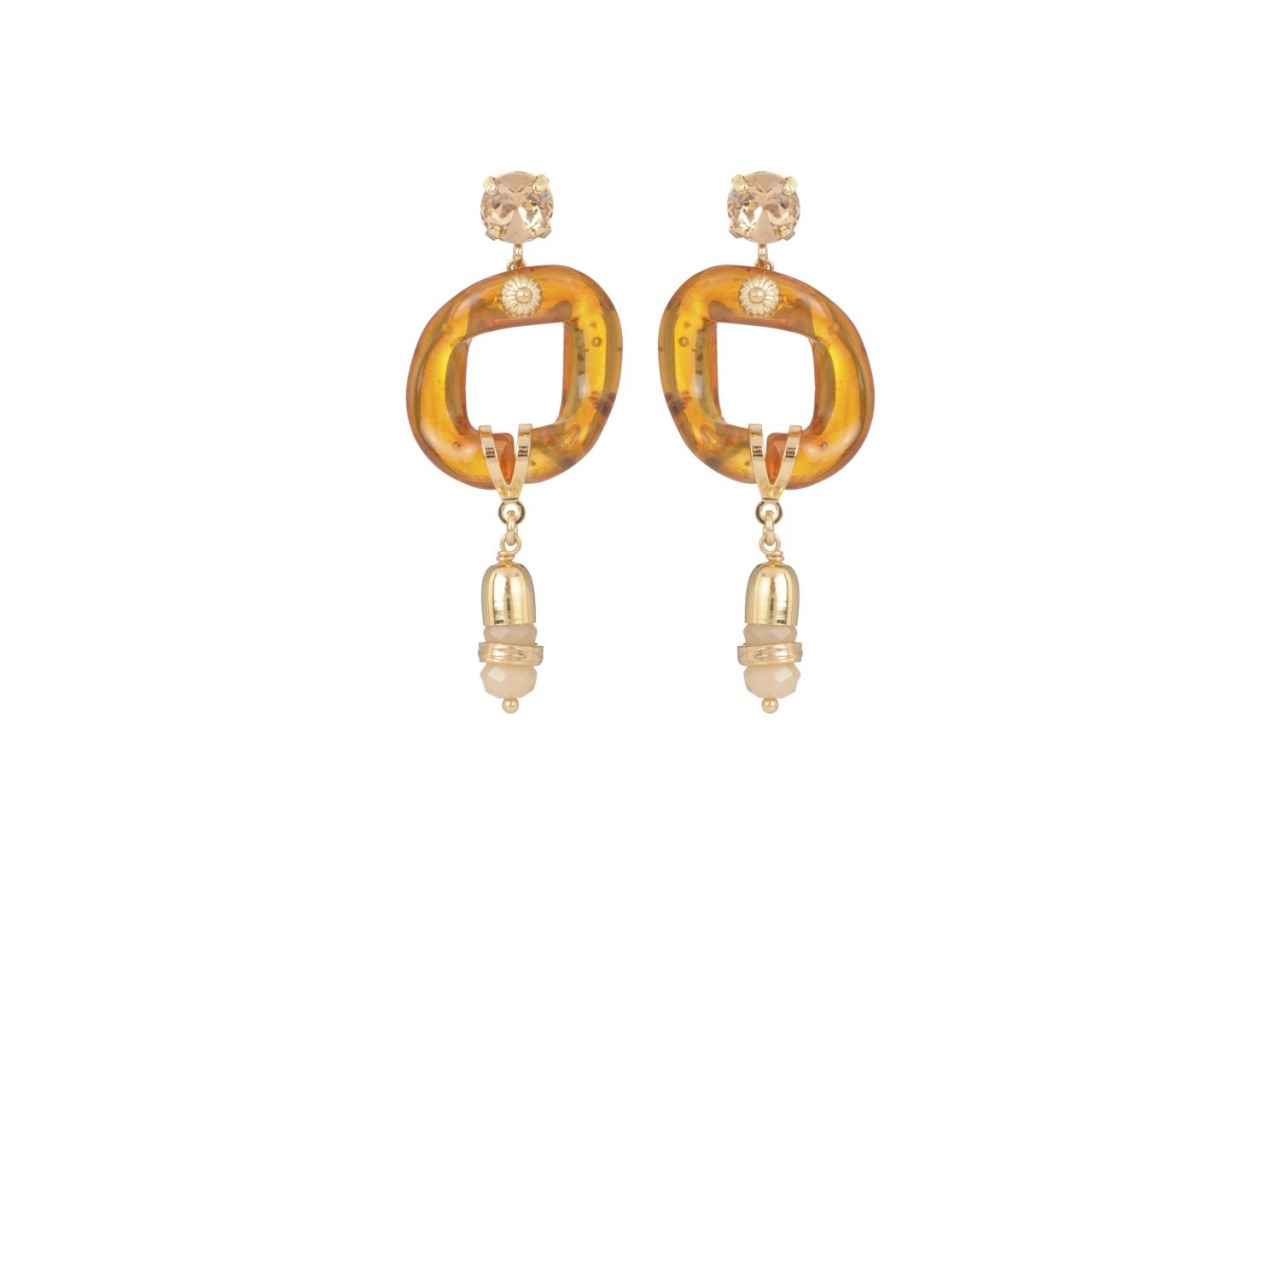 Sierra strass earrings